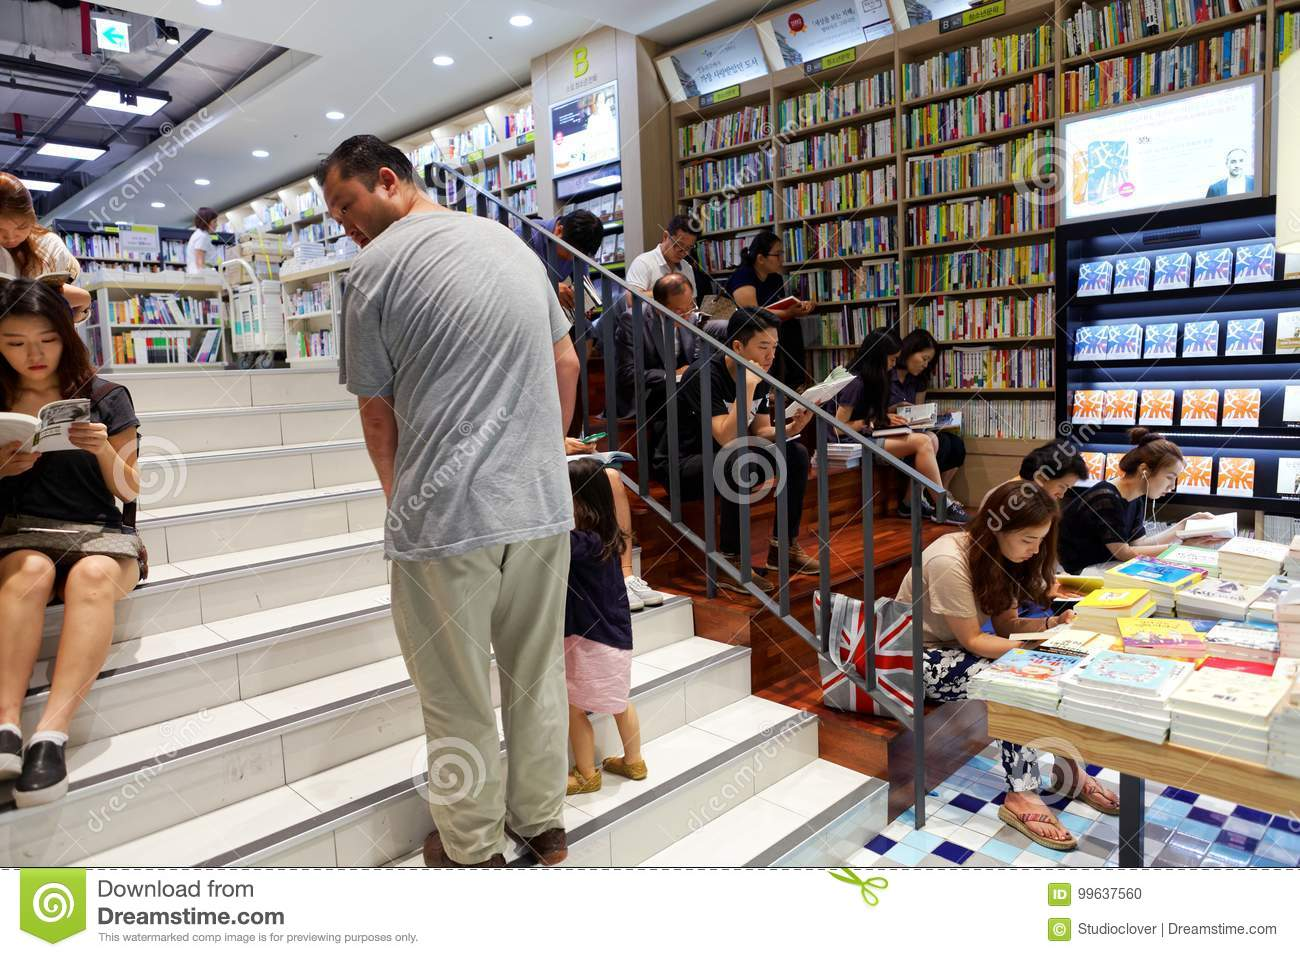 SEOUL, KOREA - AUGUST 13, 2015: People reading books in bookstore of COEX convention and exhibition center - Seoul, South Korea